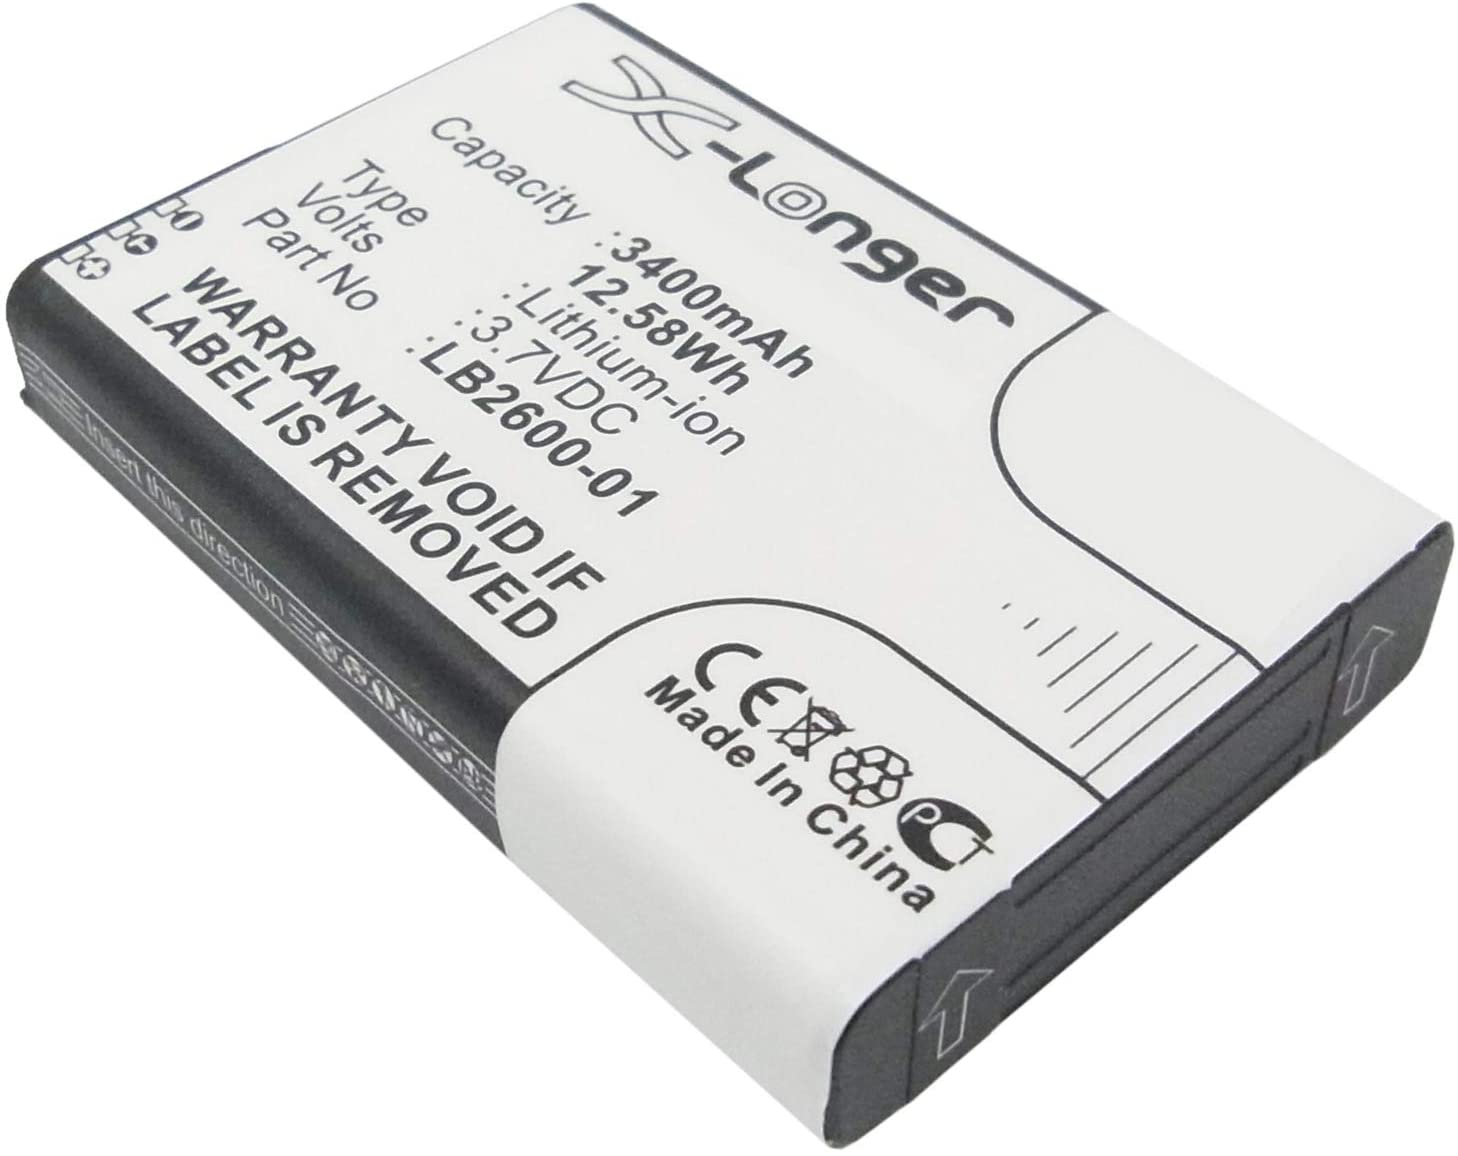 3.7V 3400mAh Battery for 4G Systems XSBox GO+ Replaces LB2600-1